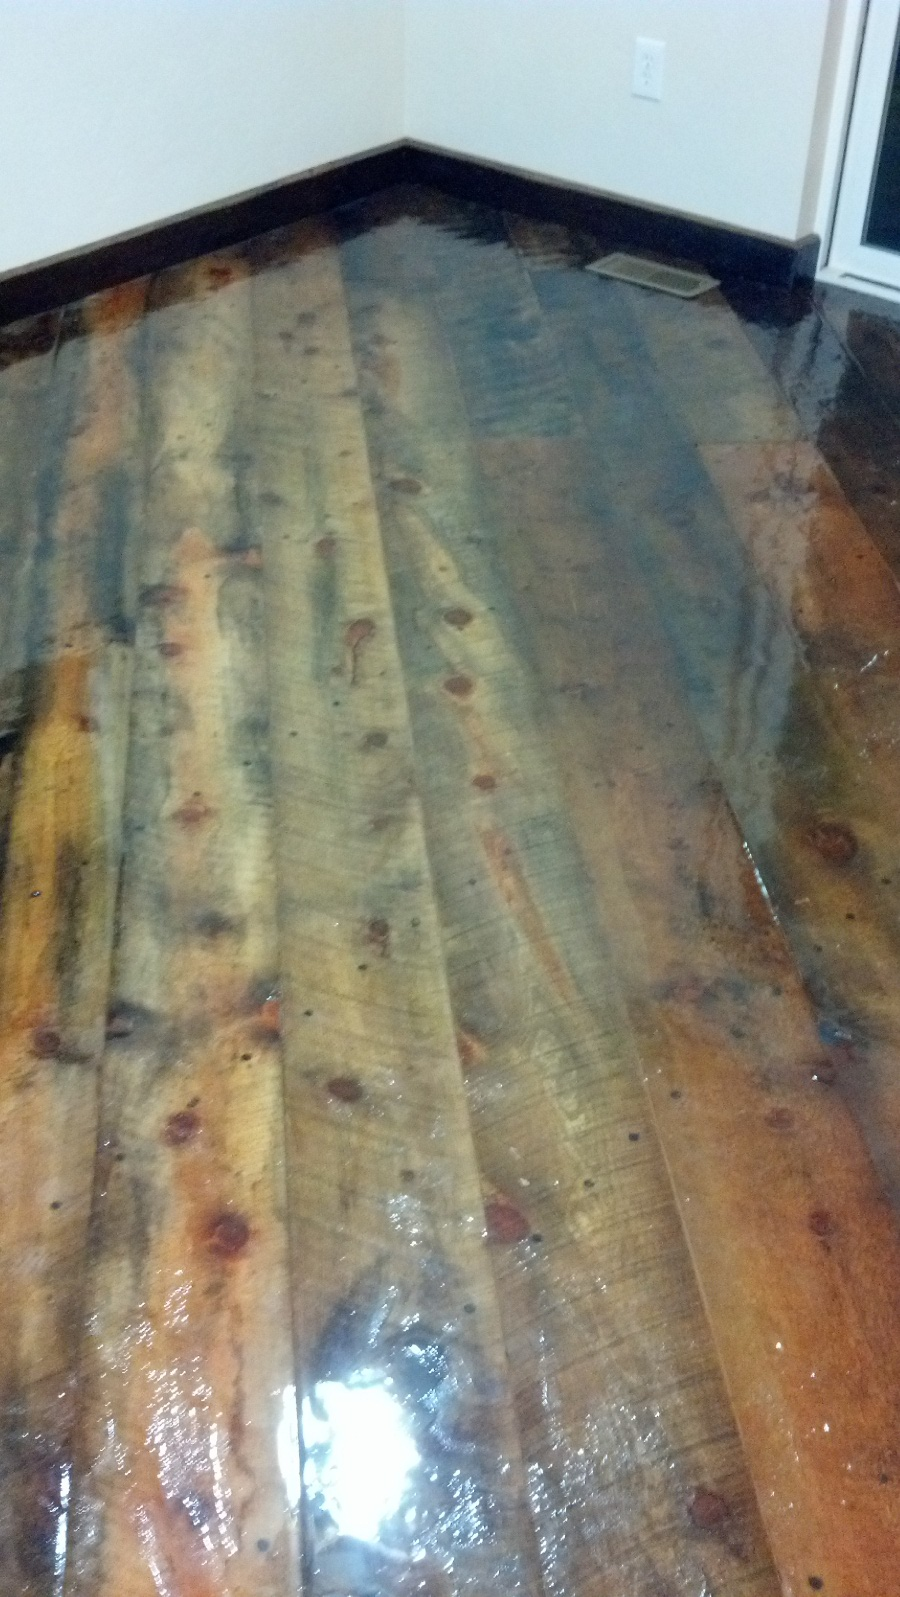 Clear Epoxy Coating Over Wood Substrate